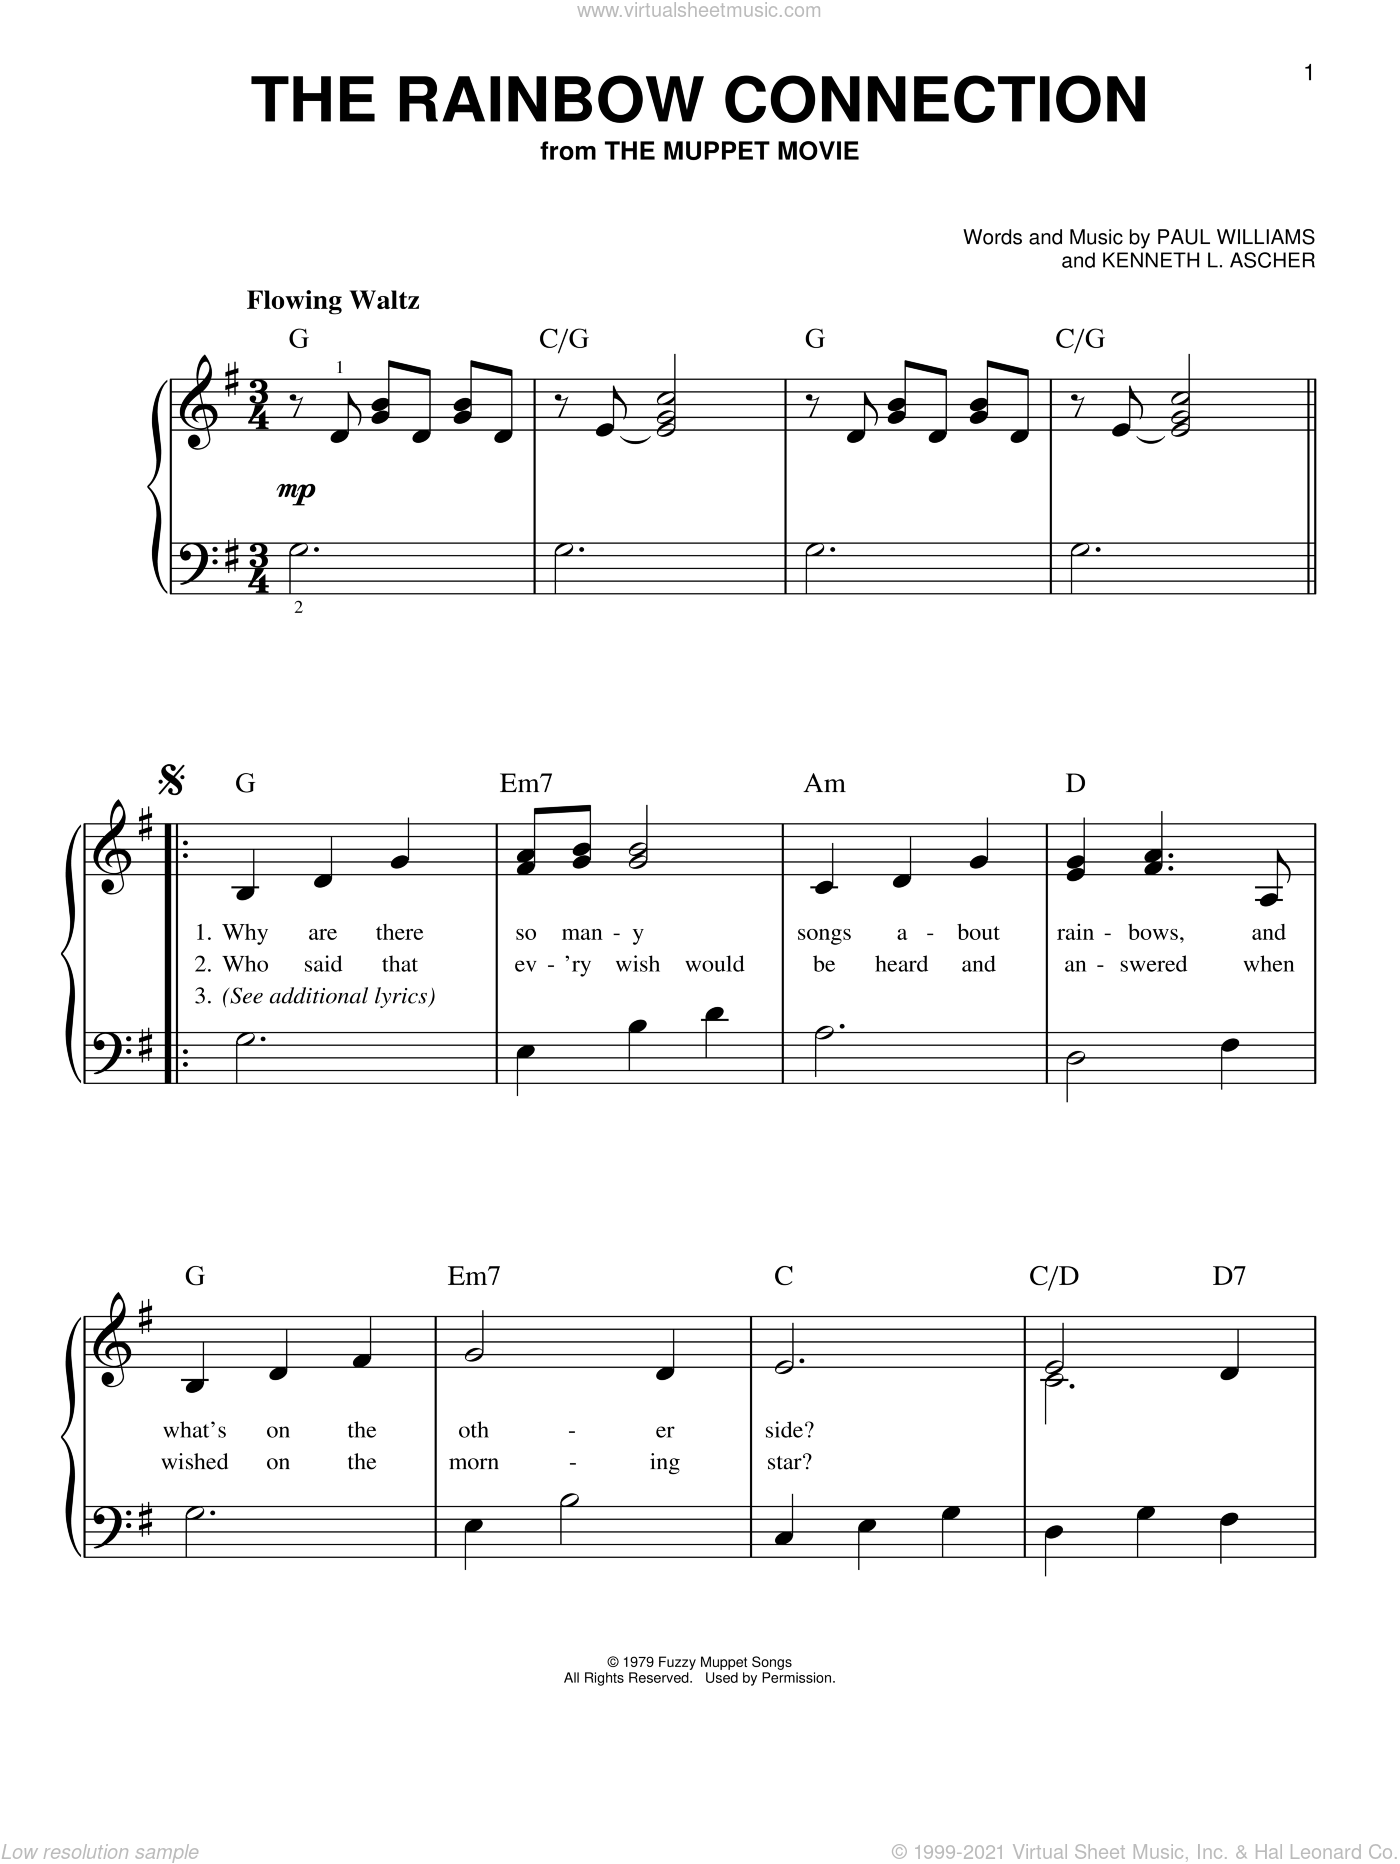 The Rainbow Connection sheet music for piano solo by Kermit The Frog, Kenneth L. Ascher and Paul Williams, easy skill level